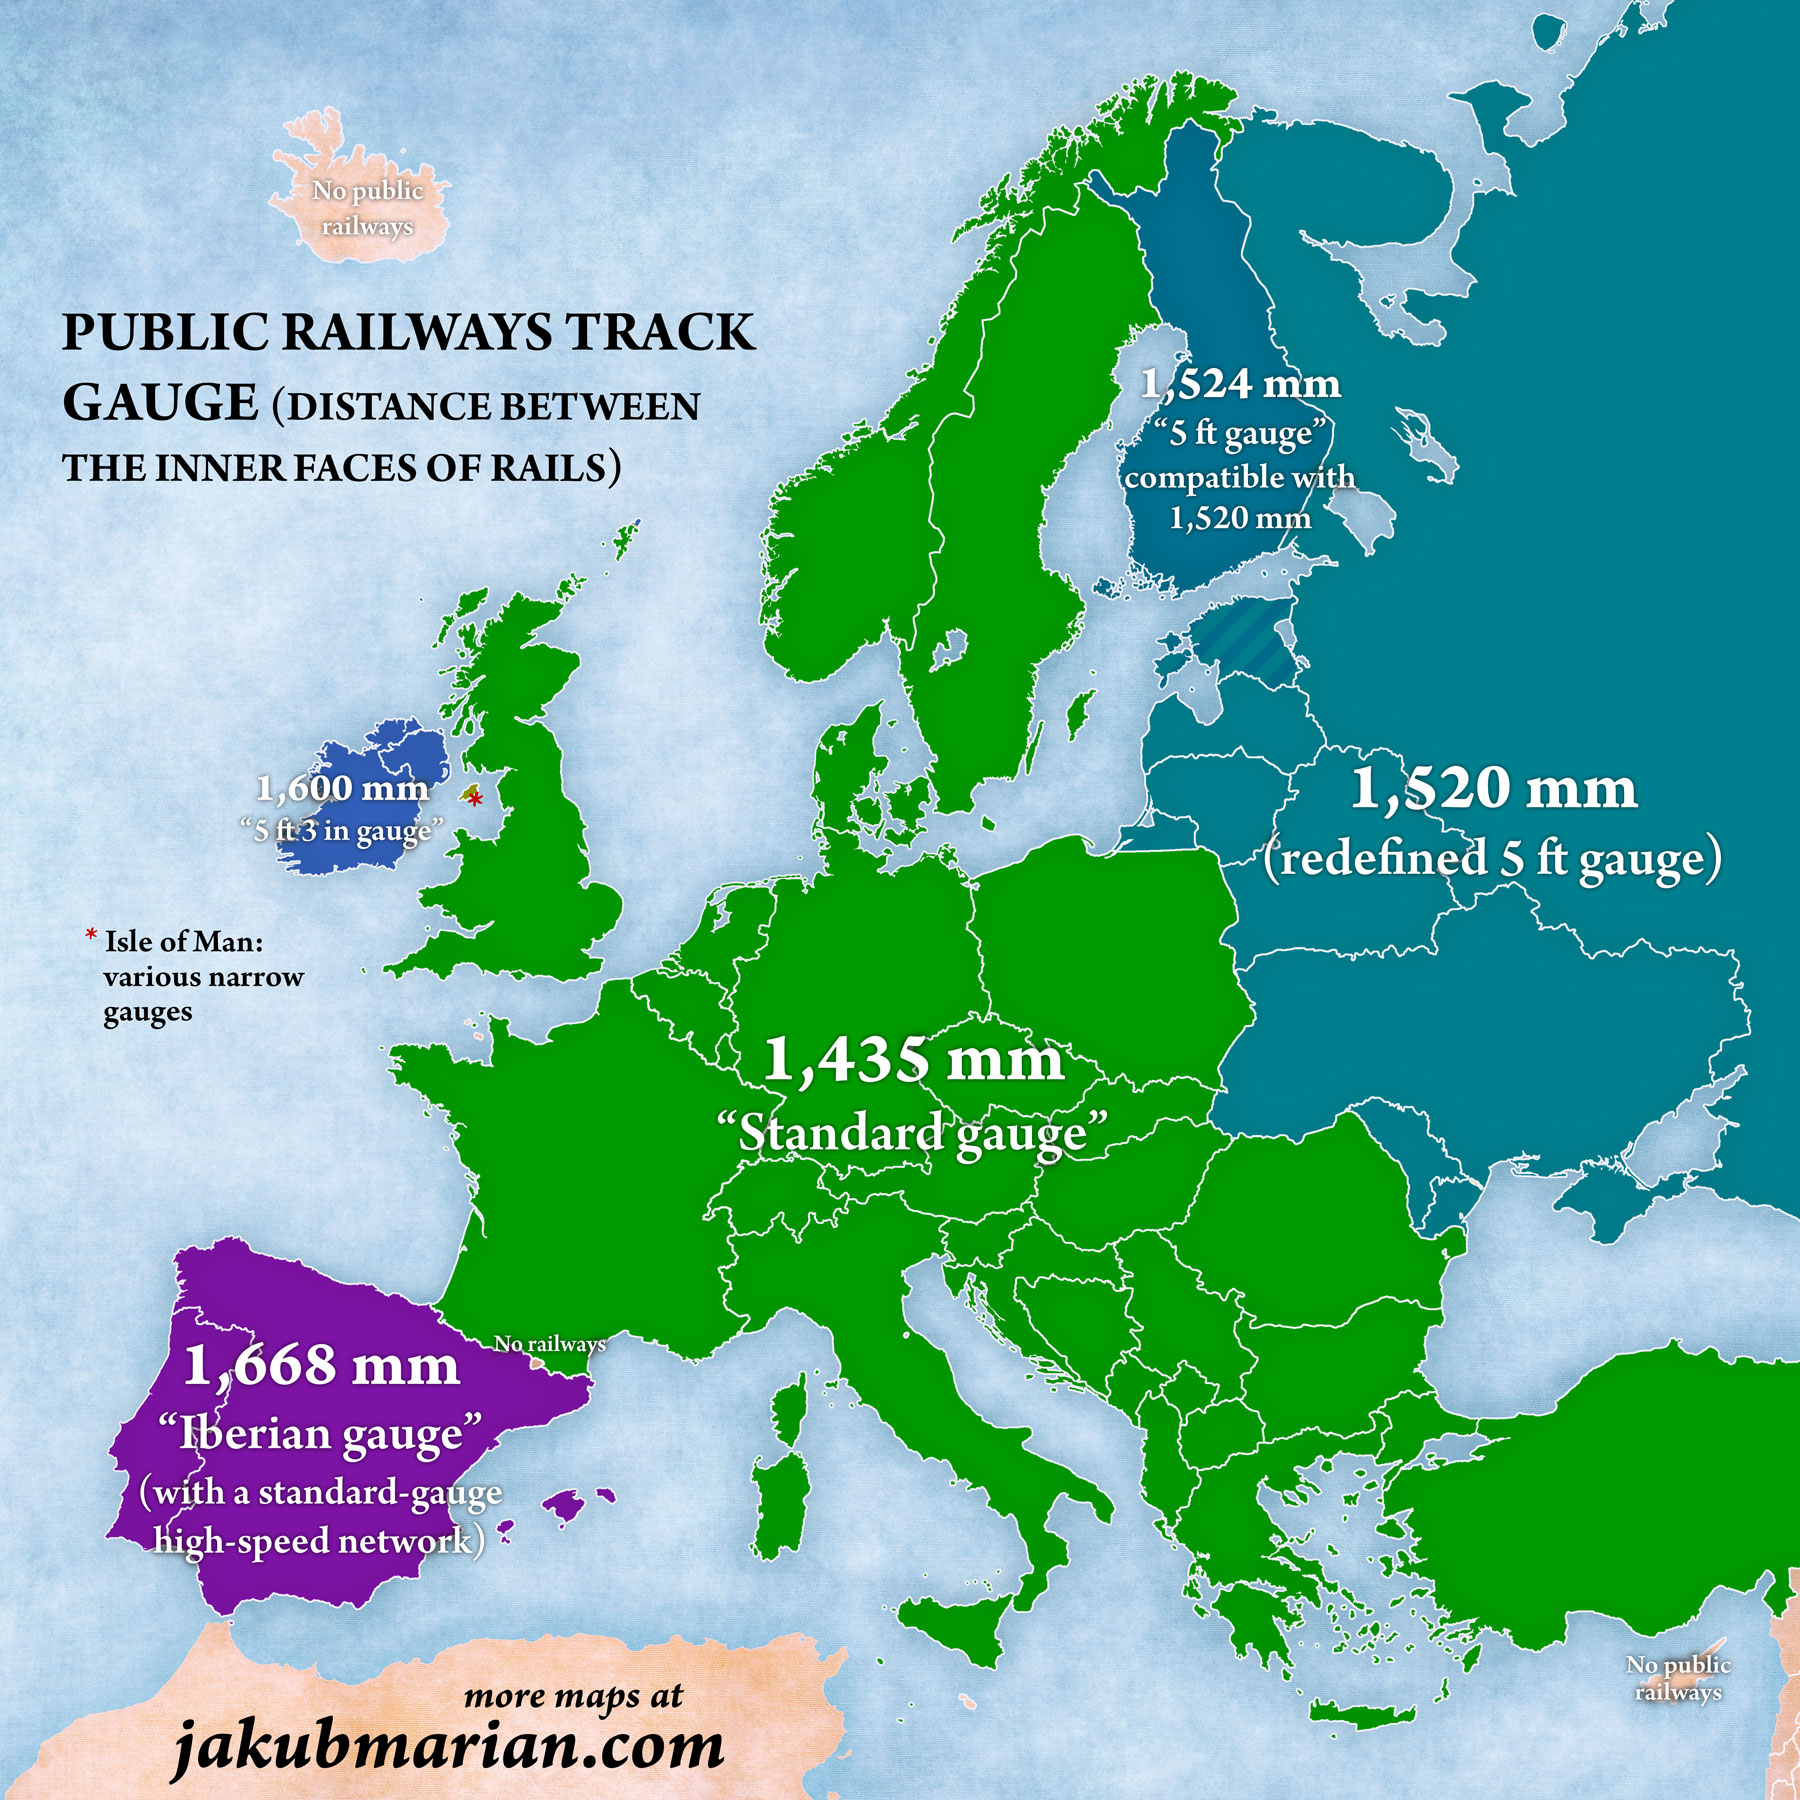 Railway track gauges in Europe